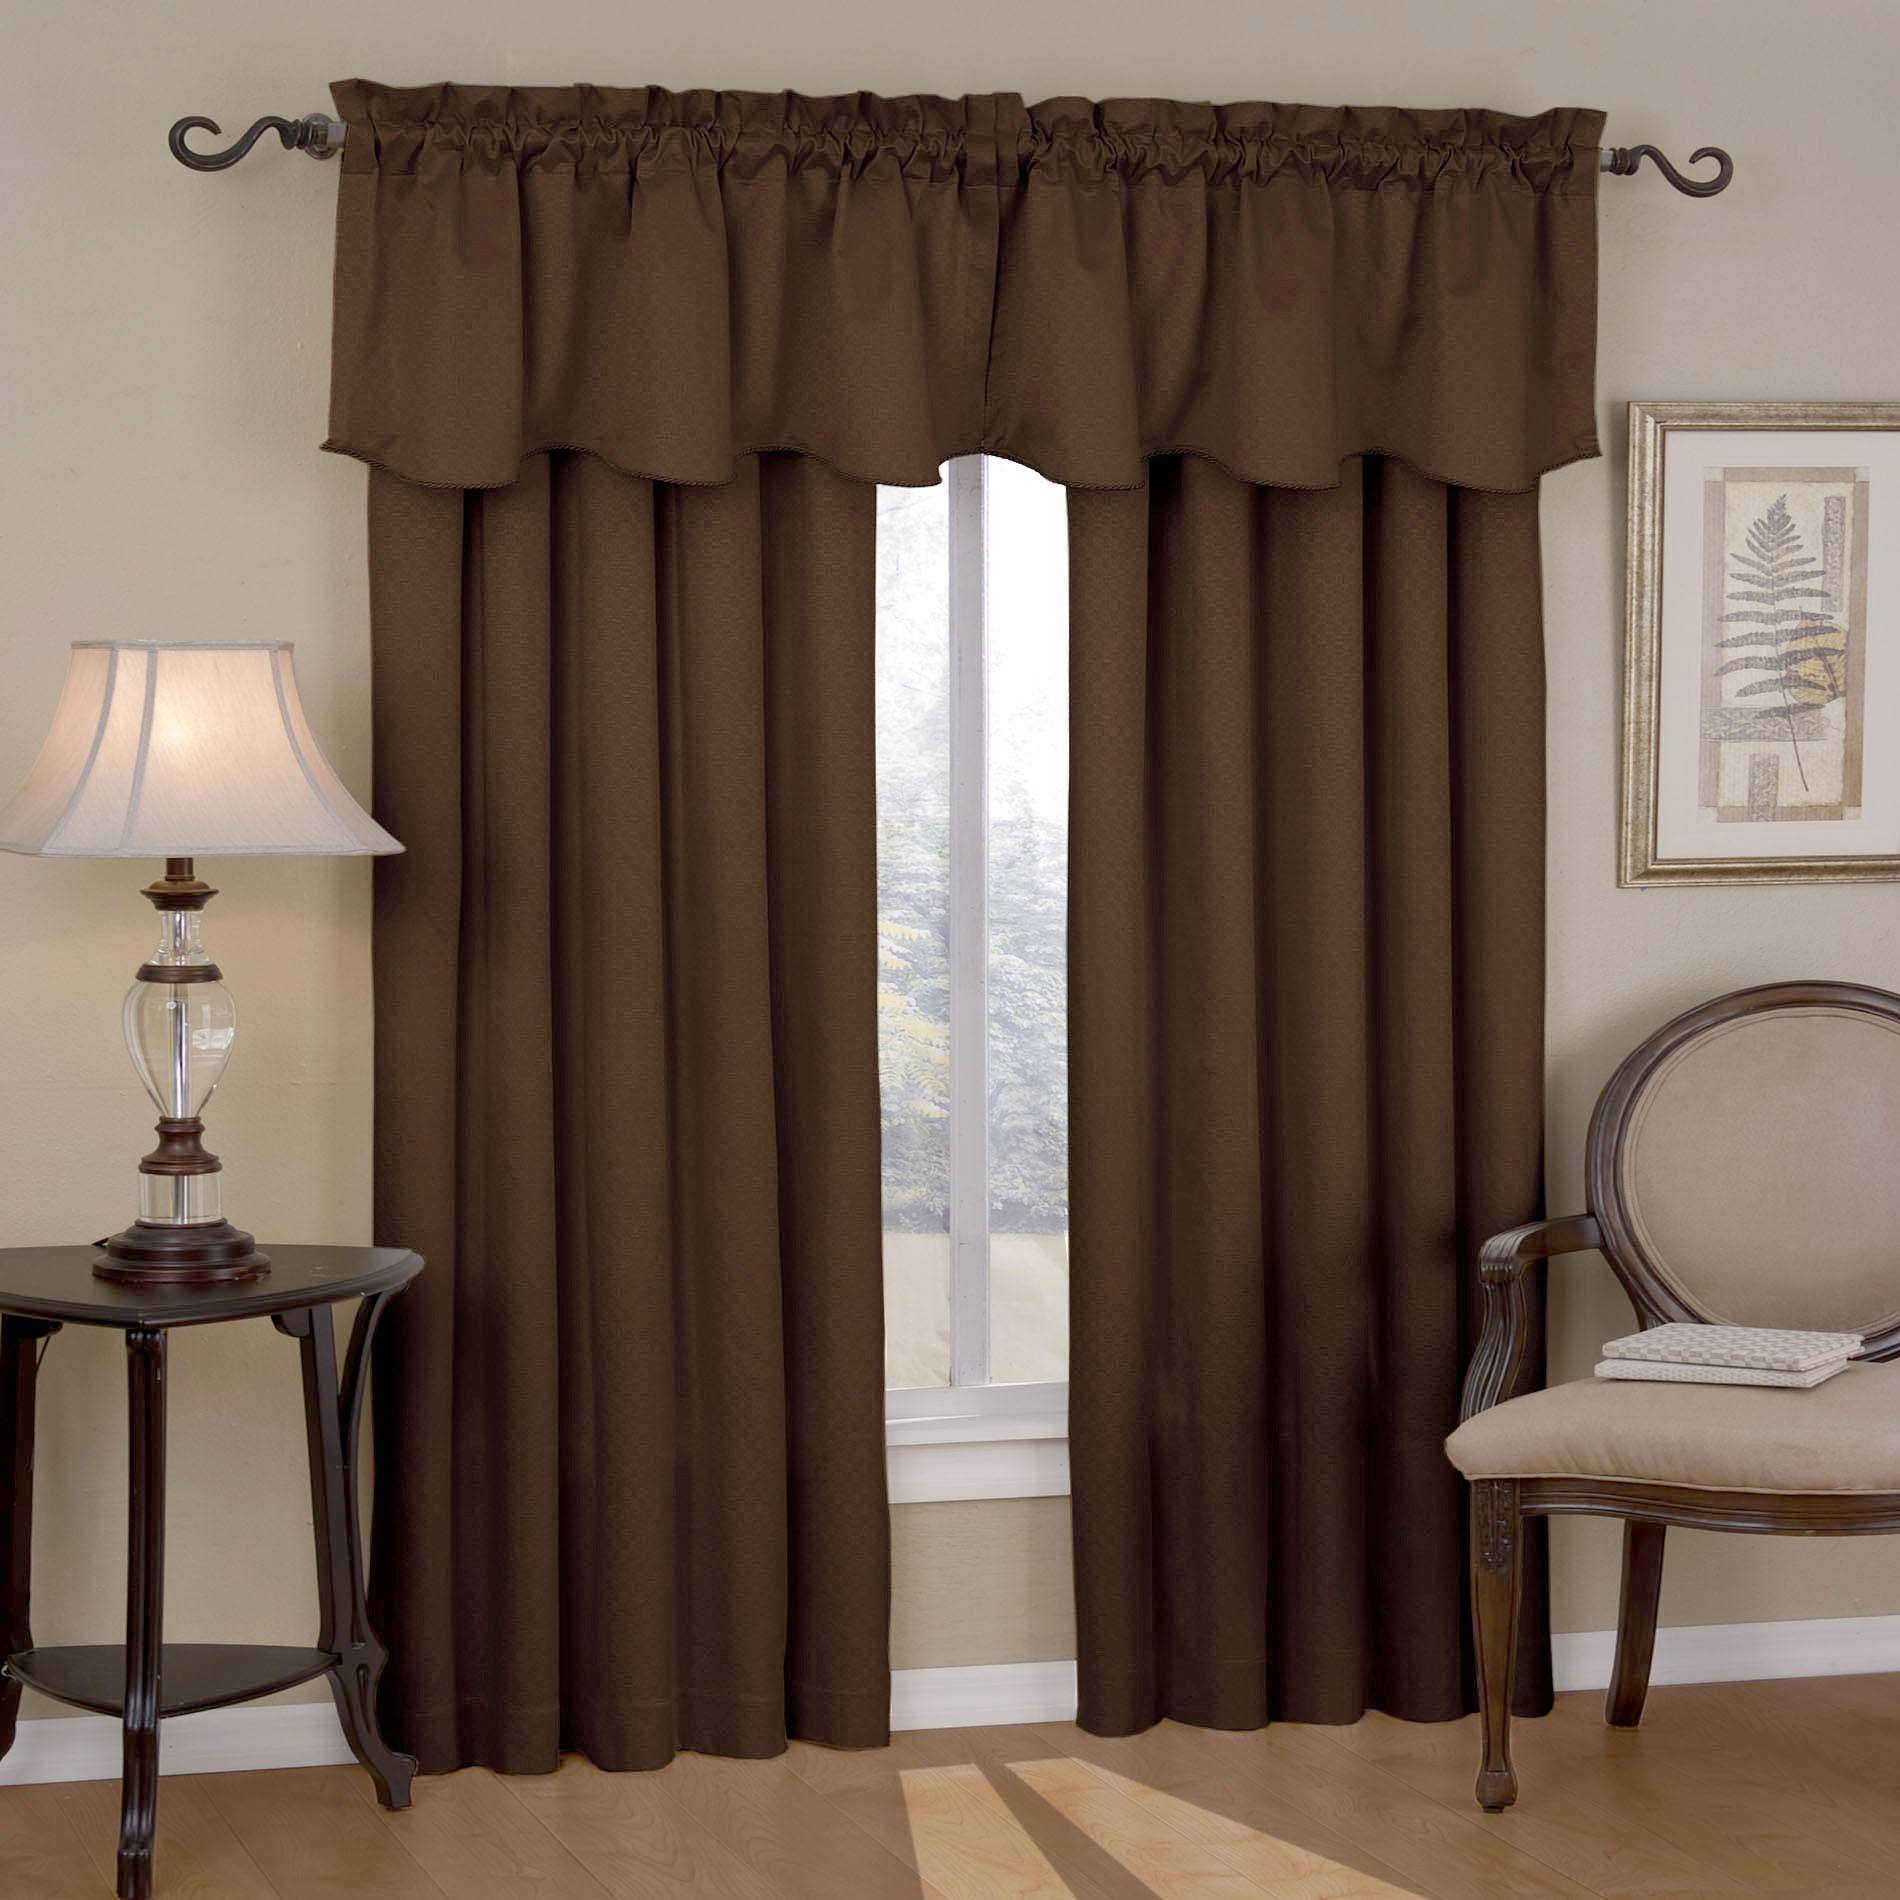 eclipse-curtains-canova-blackout-drapes-and-valance-set-in-chocolate